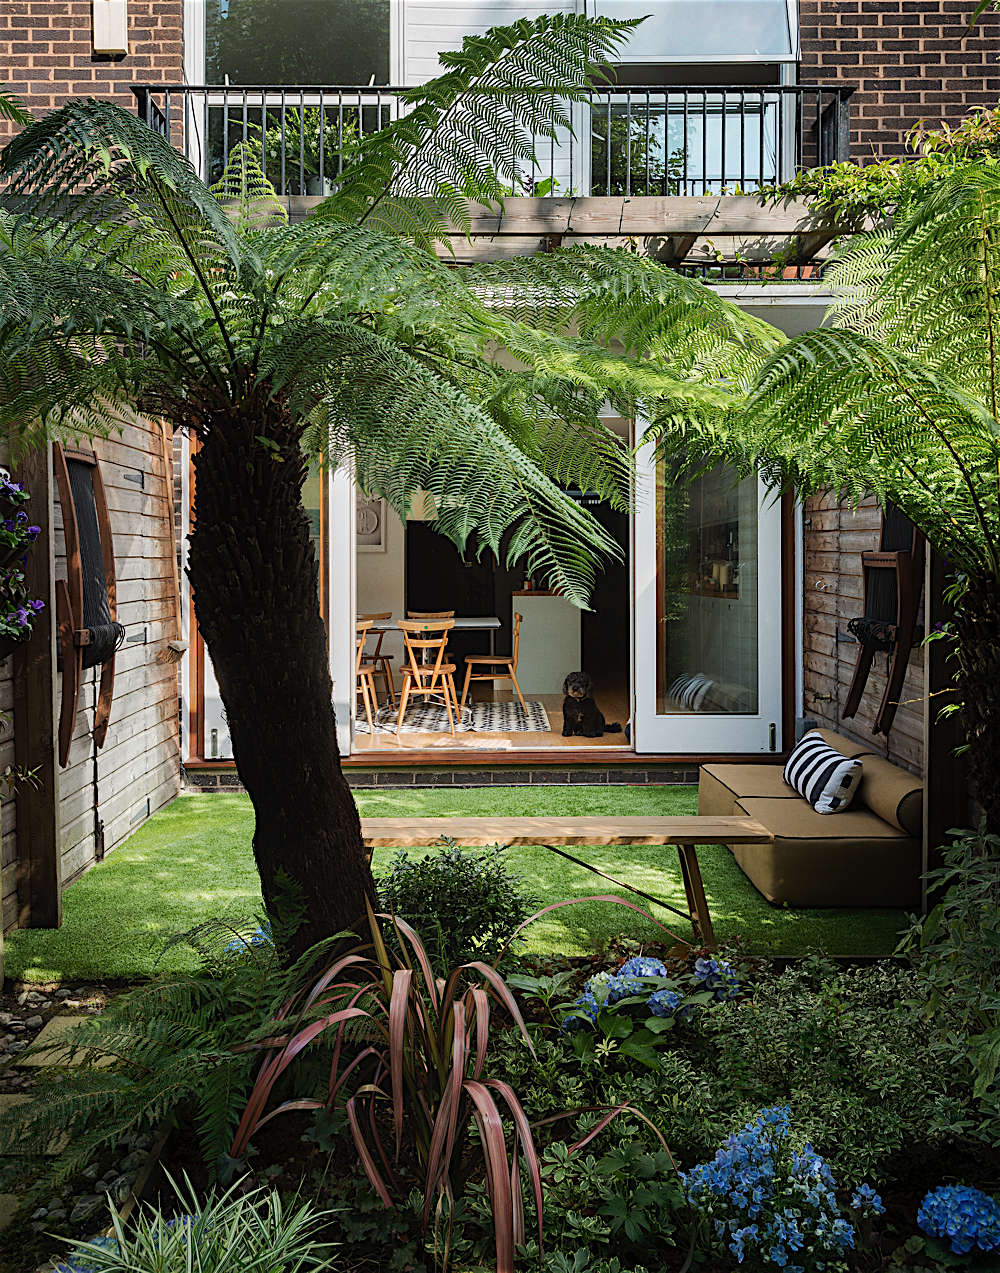 jurassic park ferns - Garden Ideas London